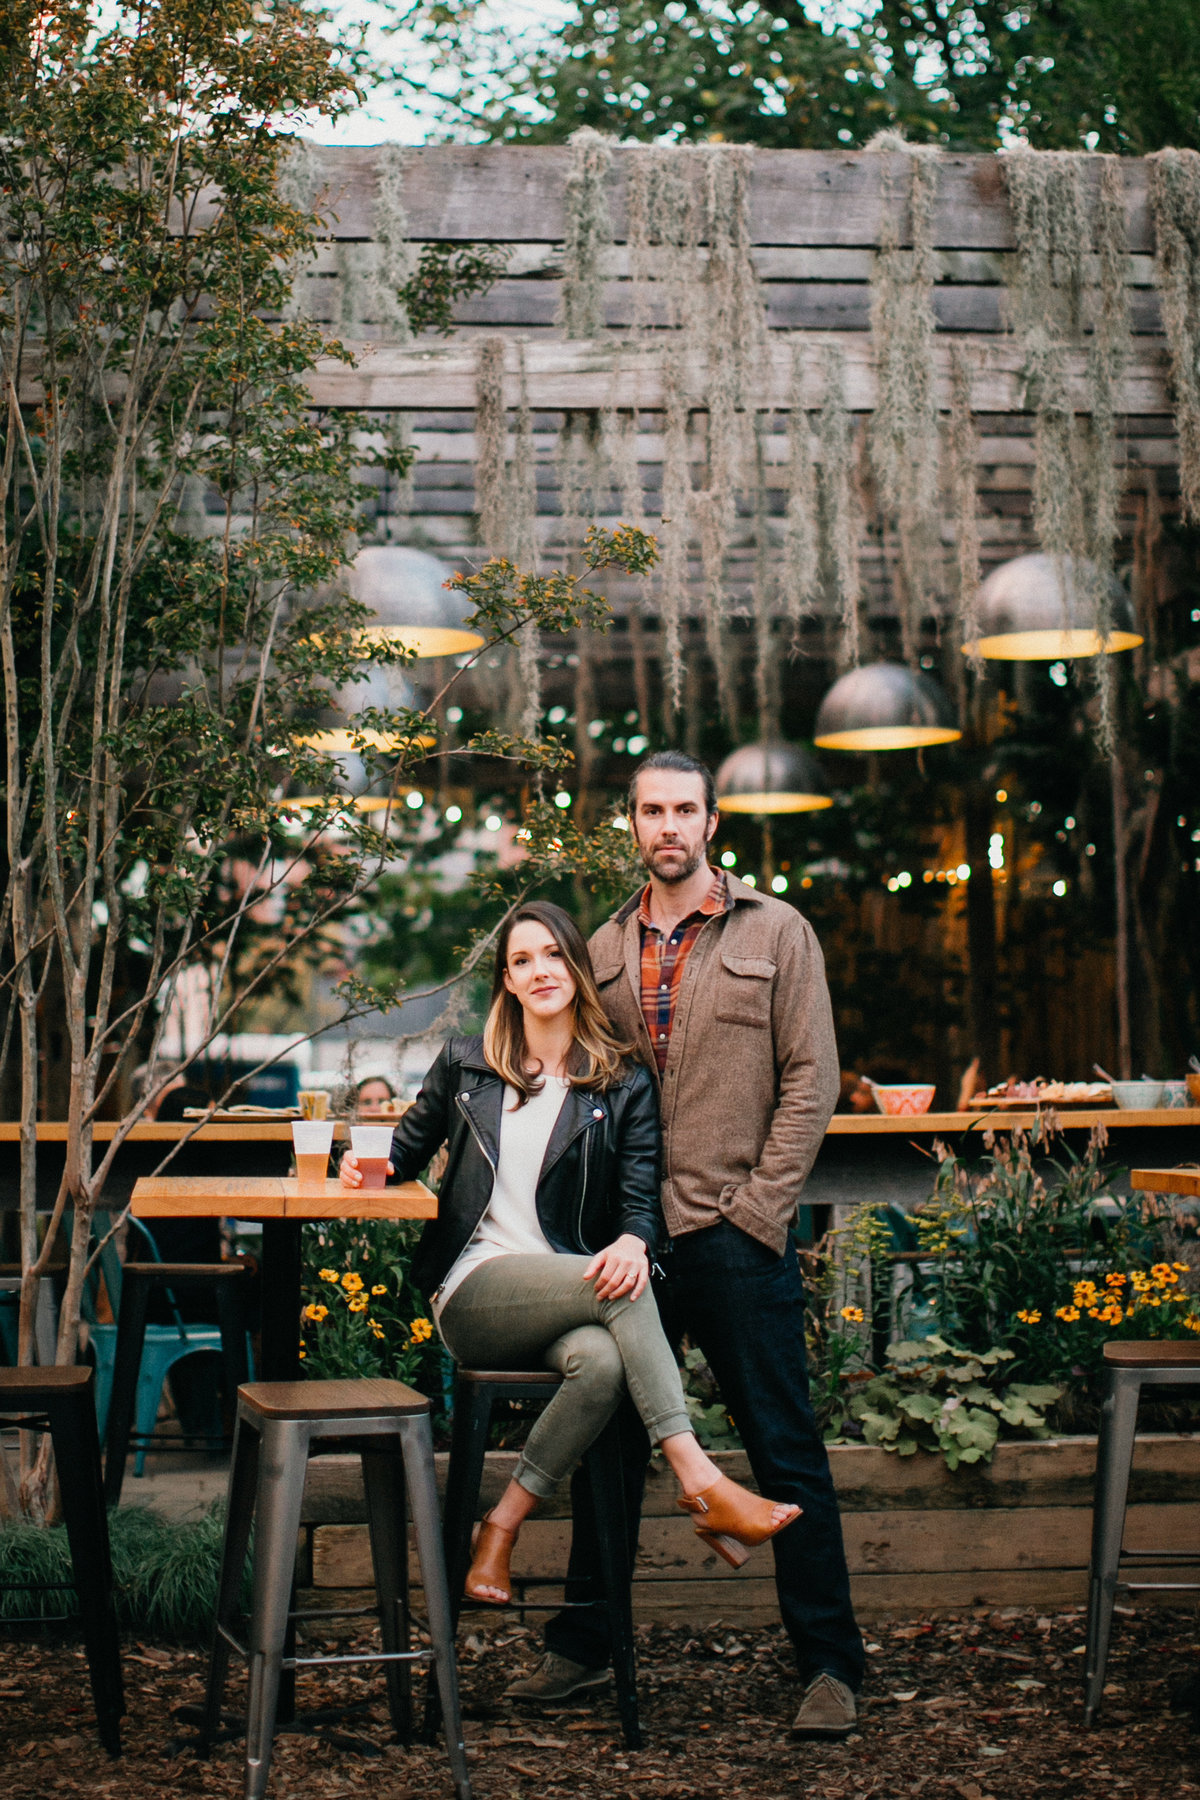 Pop up beer garden engagement shoot in Passyunk, Philadelphia.